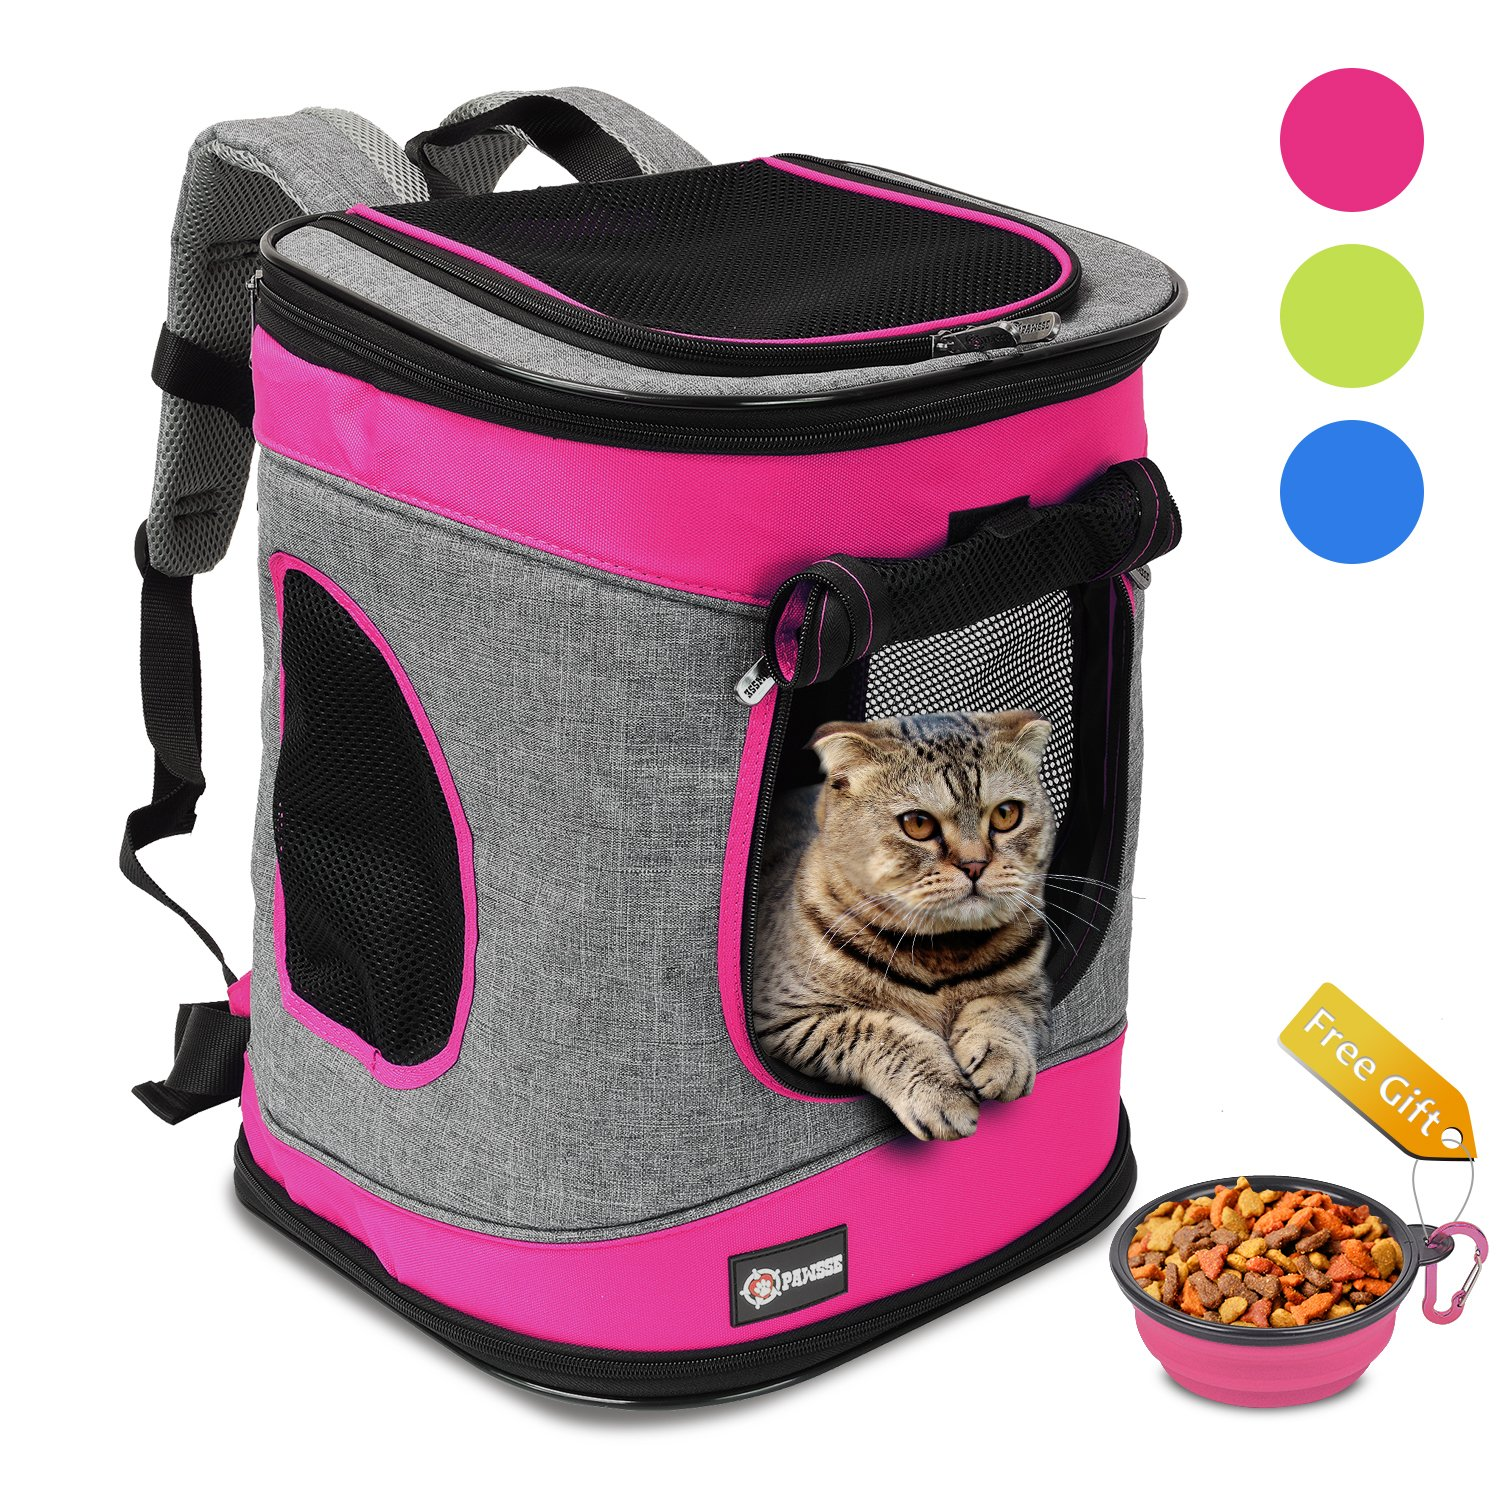 Tirrinia Pawsse Comfort Pet Carrier Backpack for Cats and Dogs up to 15 LBS Airline-Approved Travel Carrier for Pets Hiking, Walking, Cycling & Outdoor Use 16  H x13.2 L x12 Pink